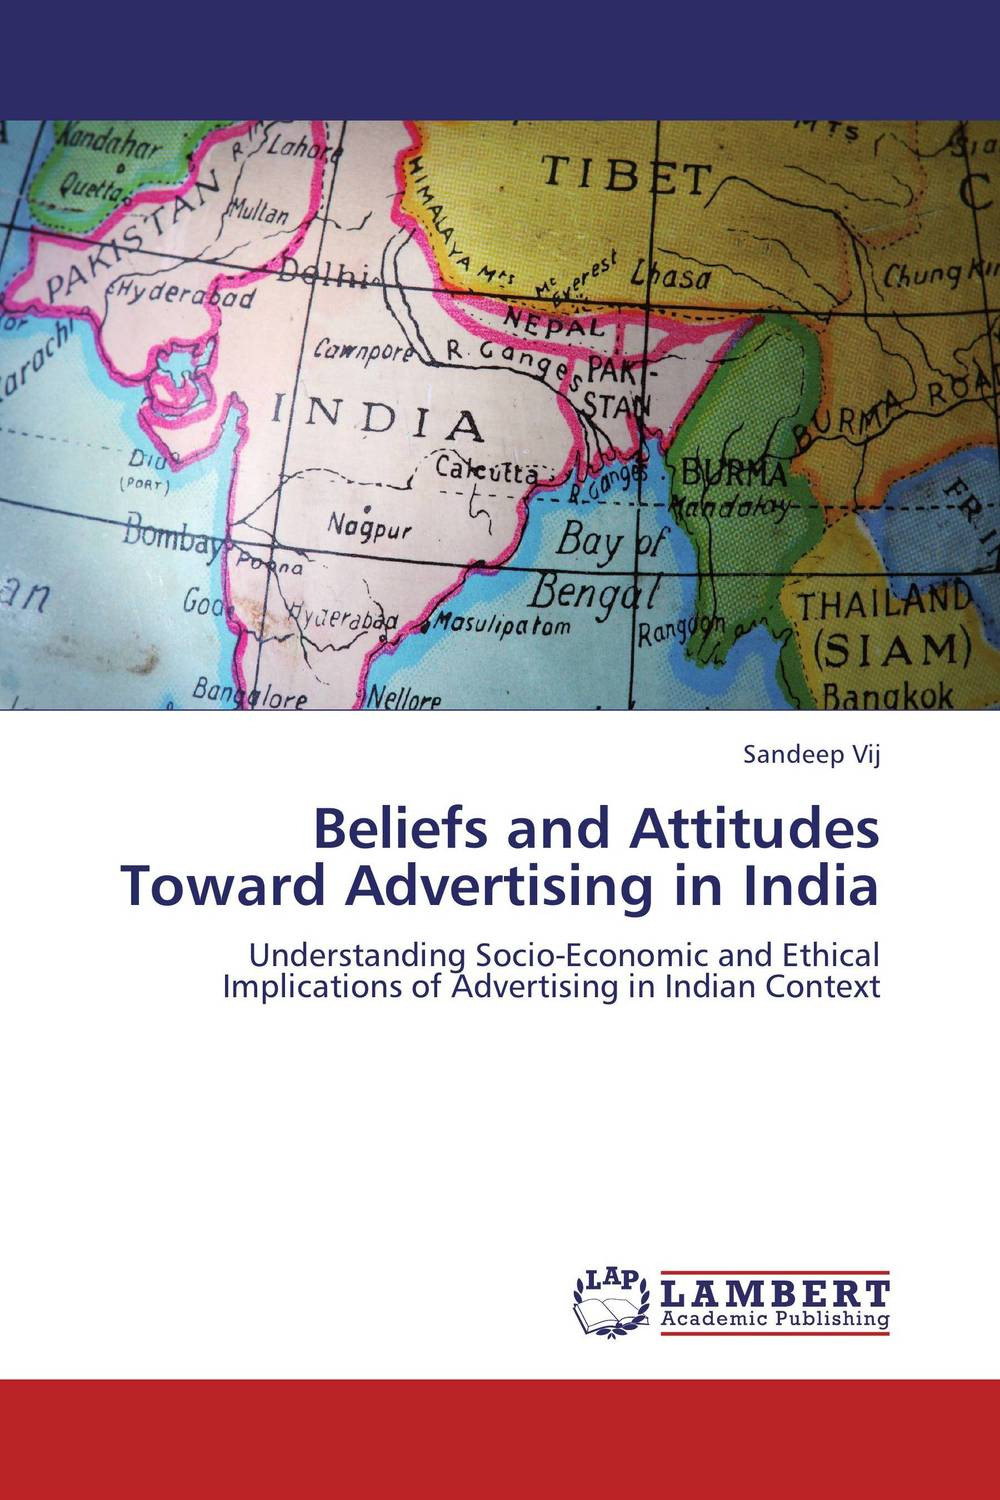 Beliefs and Attitudes Toward Advertising in India 01p624991